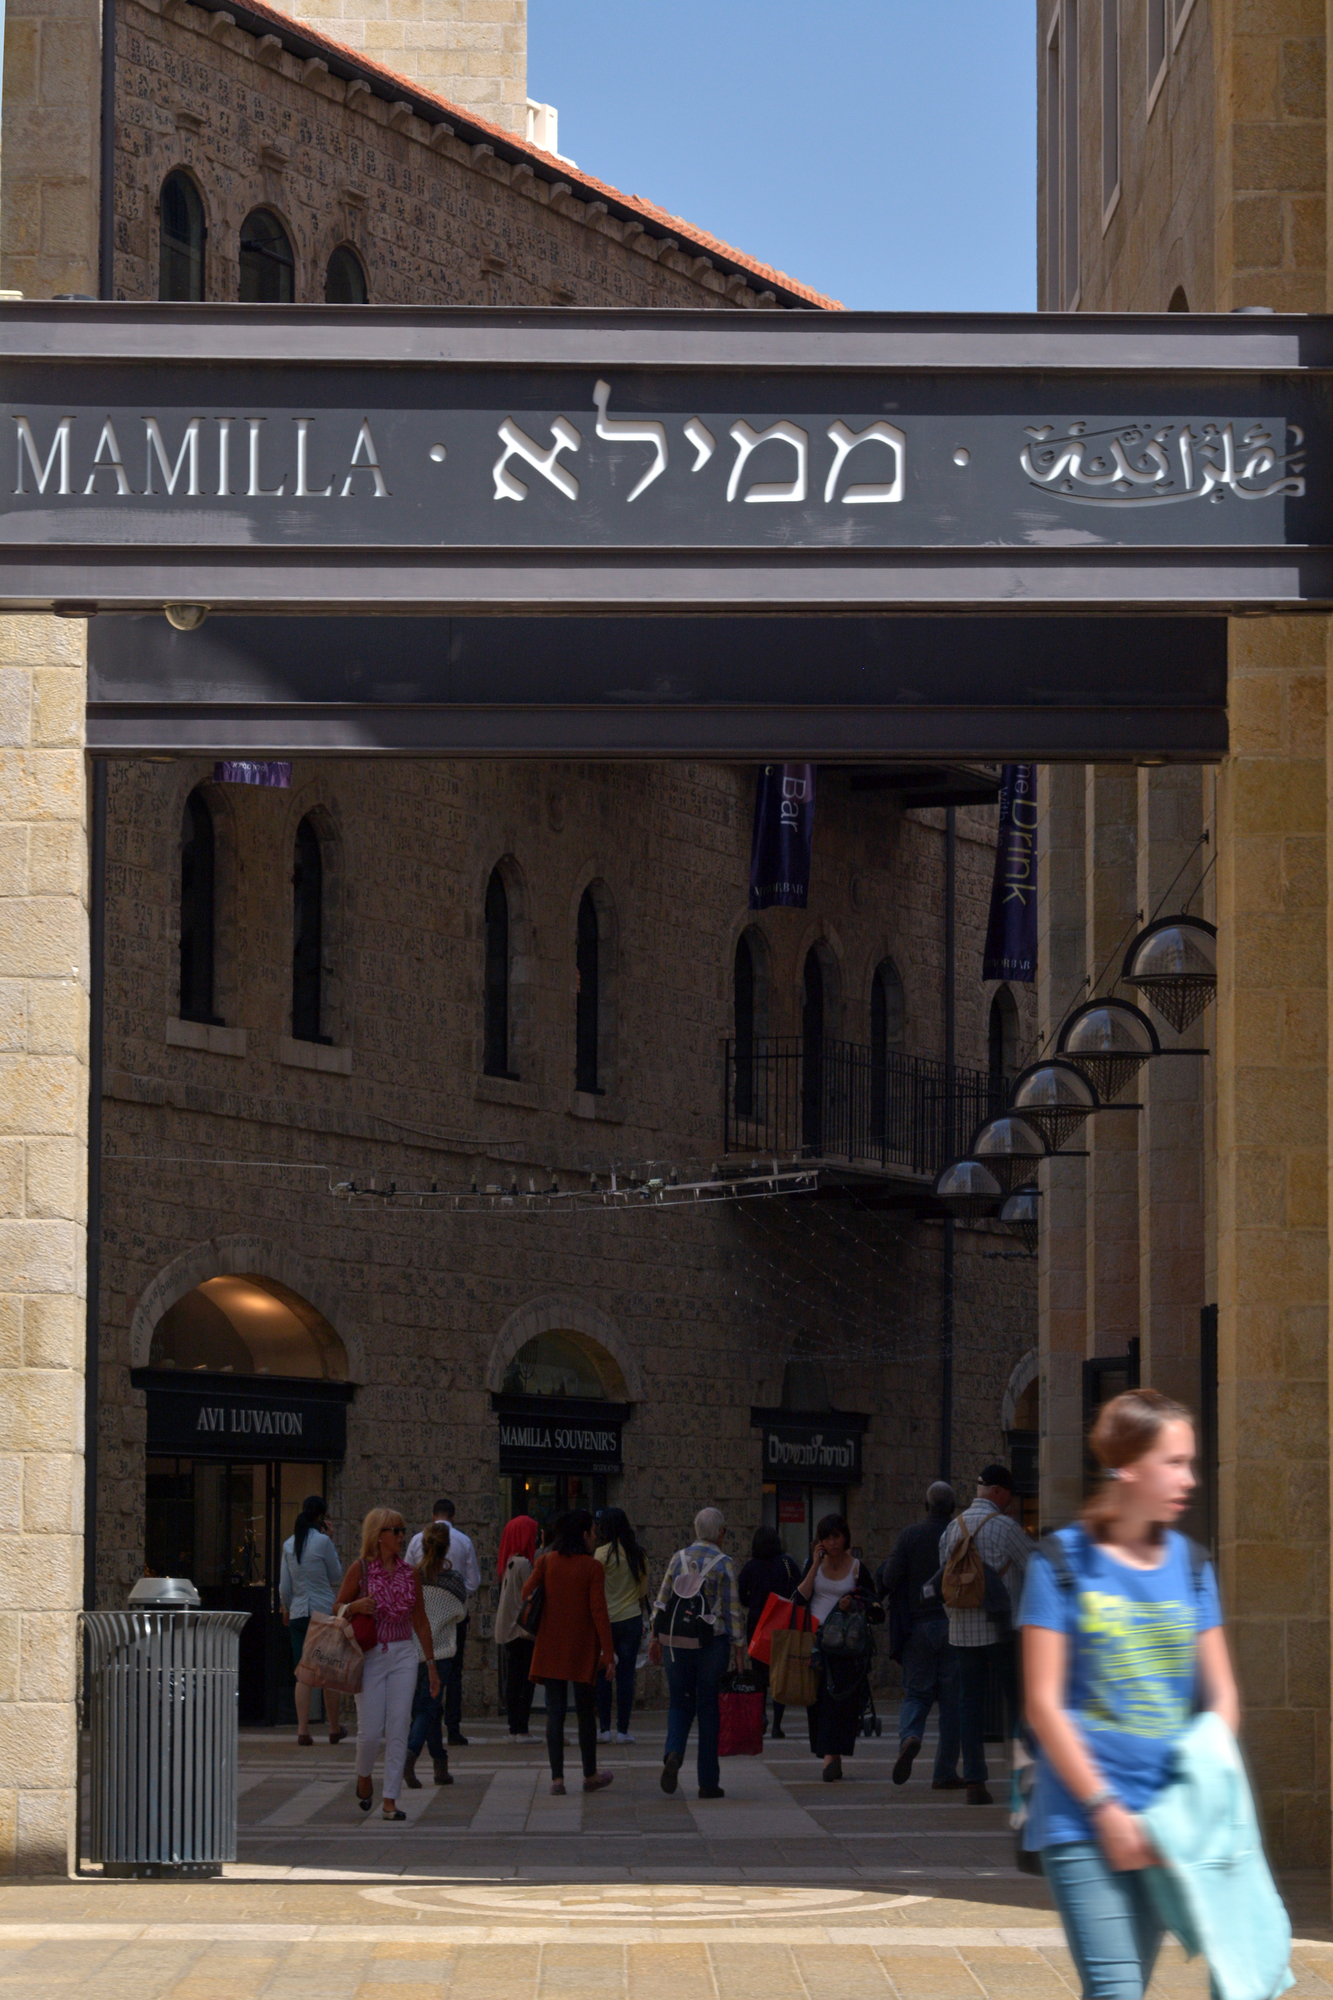 JERUSALEM - MAR 26 2015:Visitors at Mamilla mall in Jerusalem, Israel.It's a popular open air shopping mall with two-level indoor section, hotels, cafes, boutiques and fashion stores.